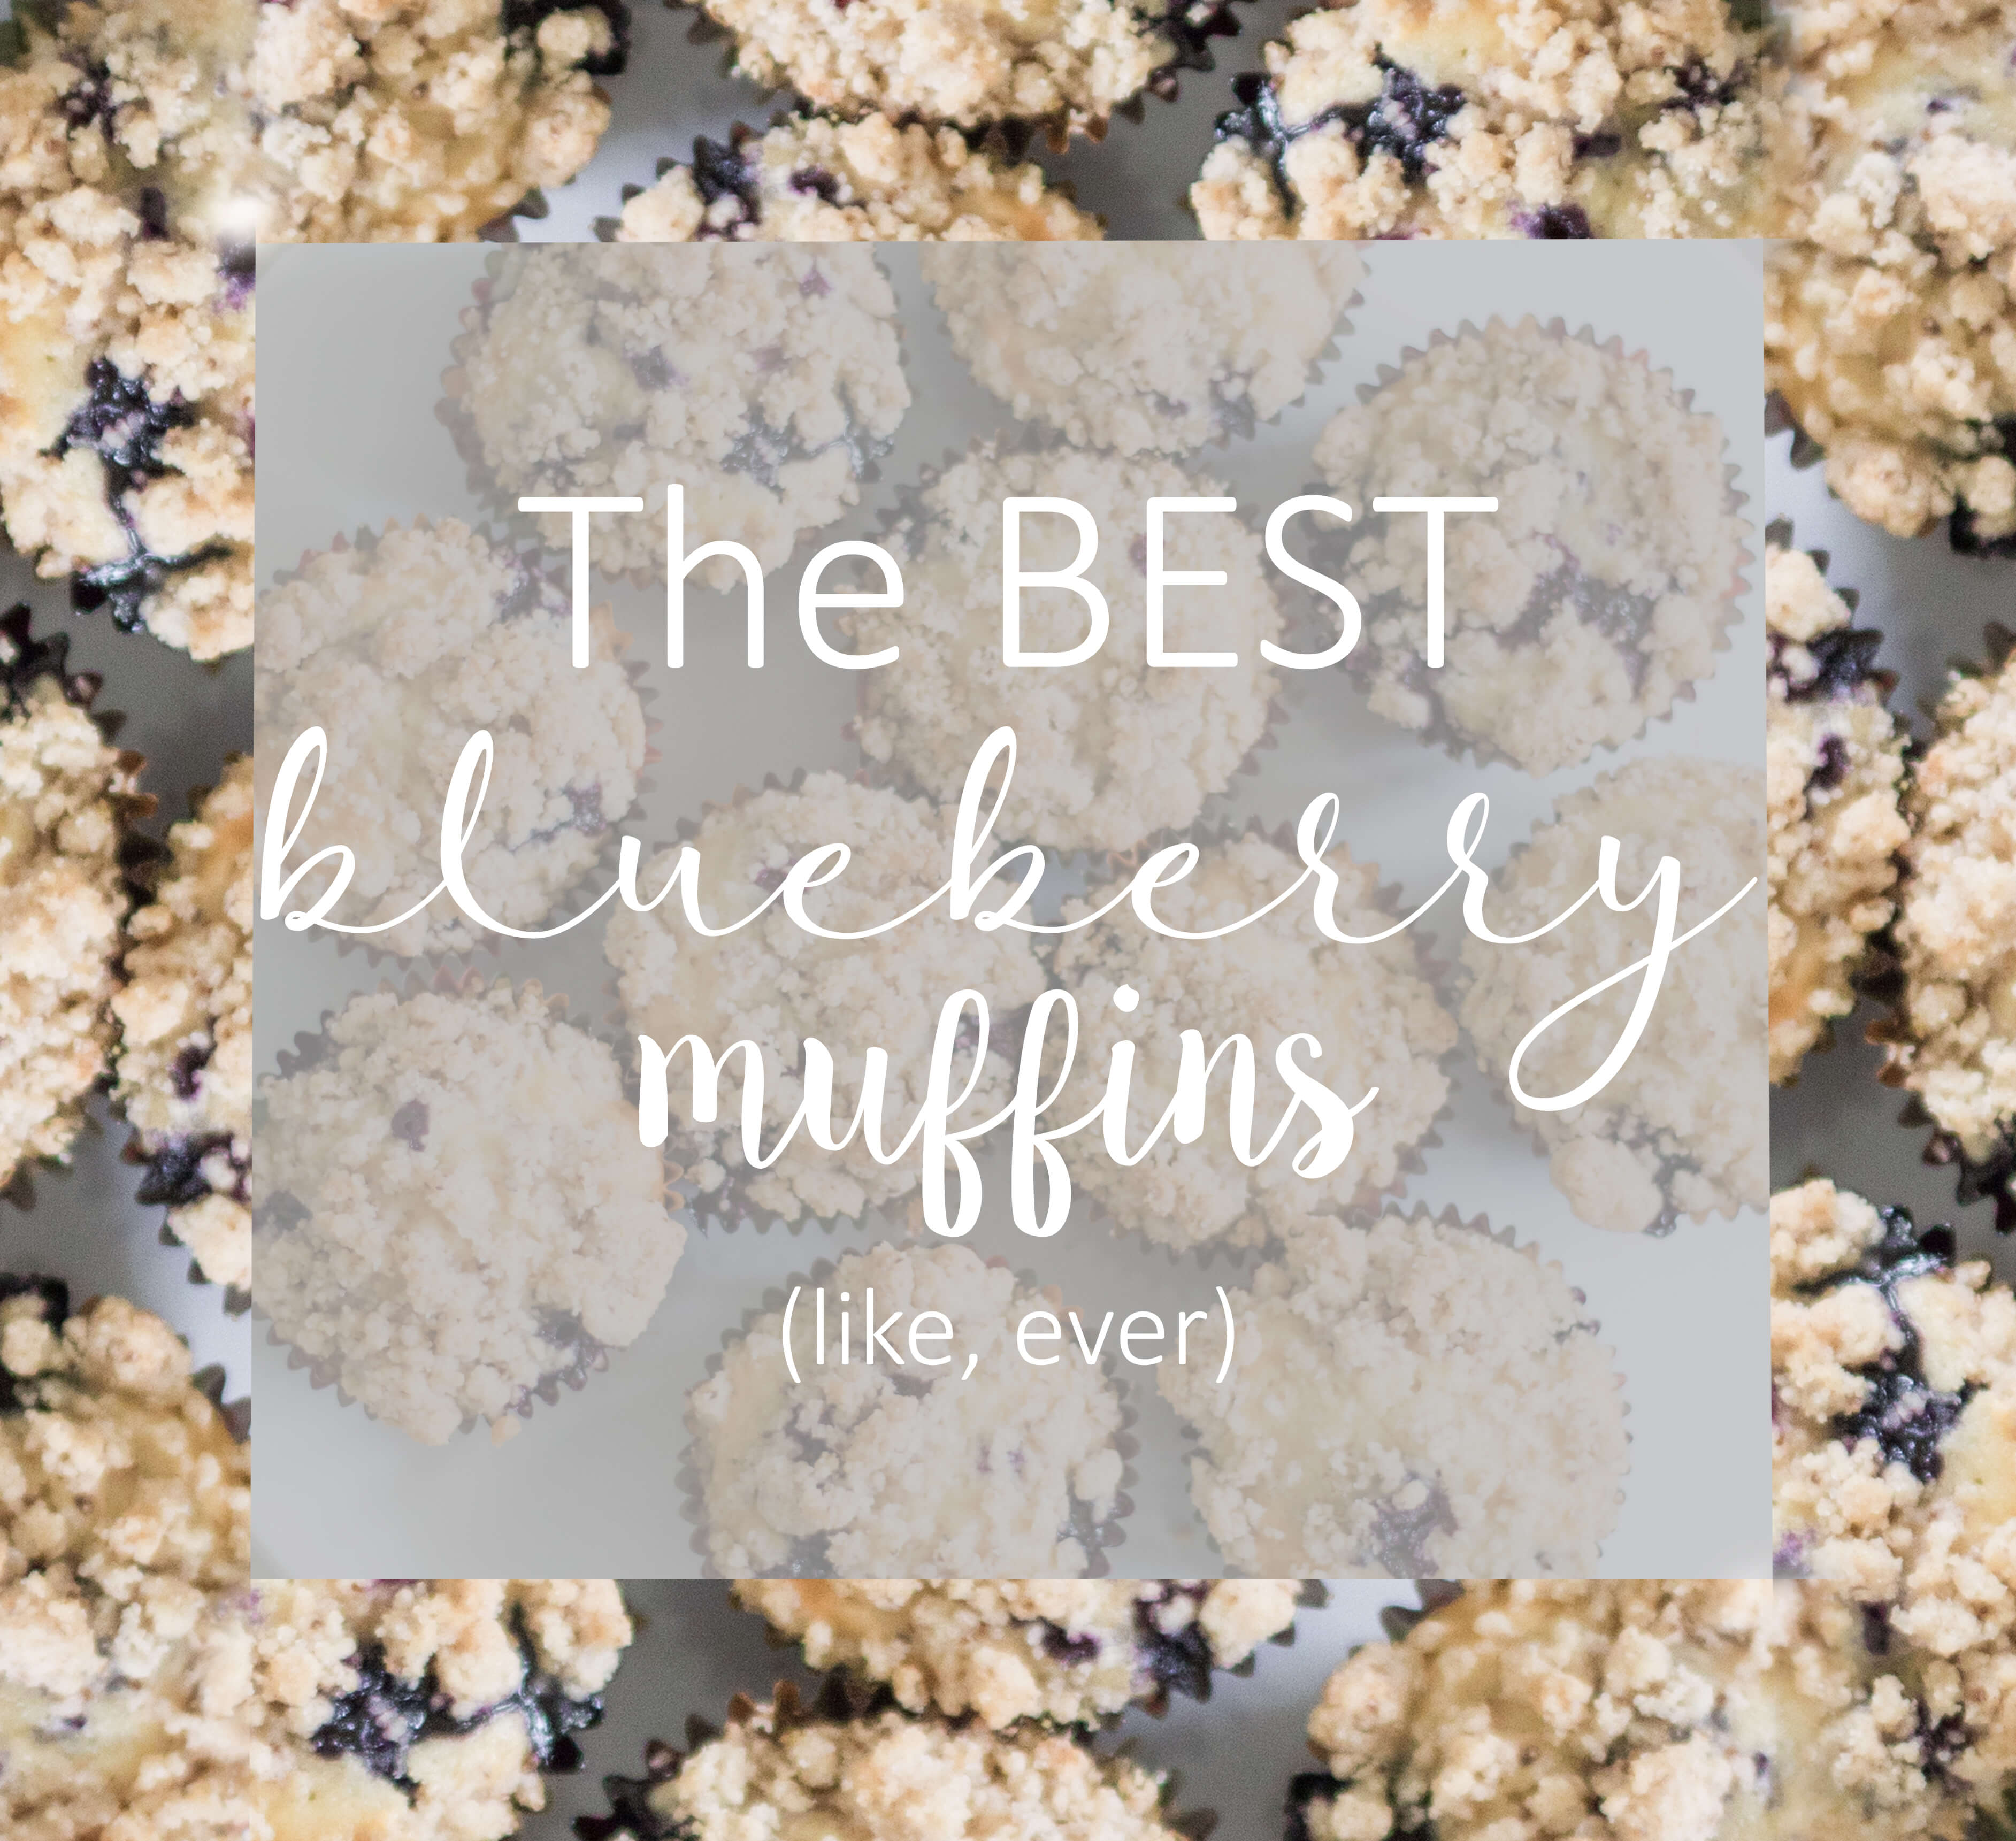 Best Blueberry Muffins, The Only Recipe You Need!